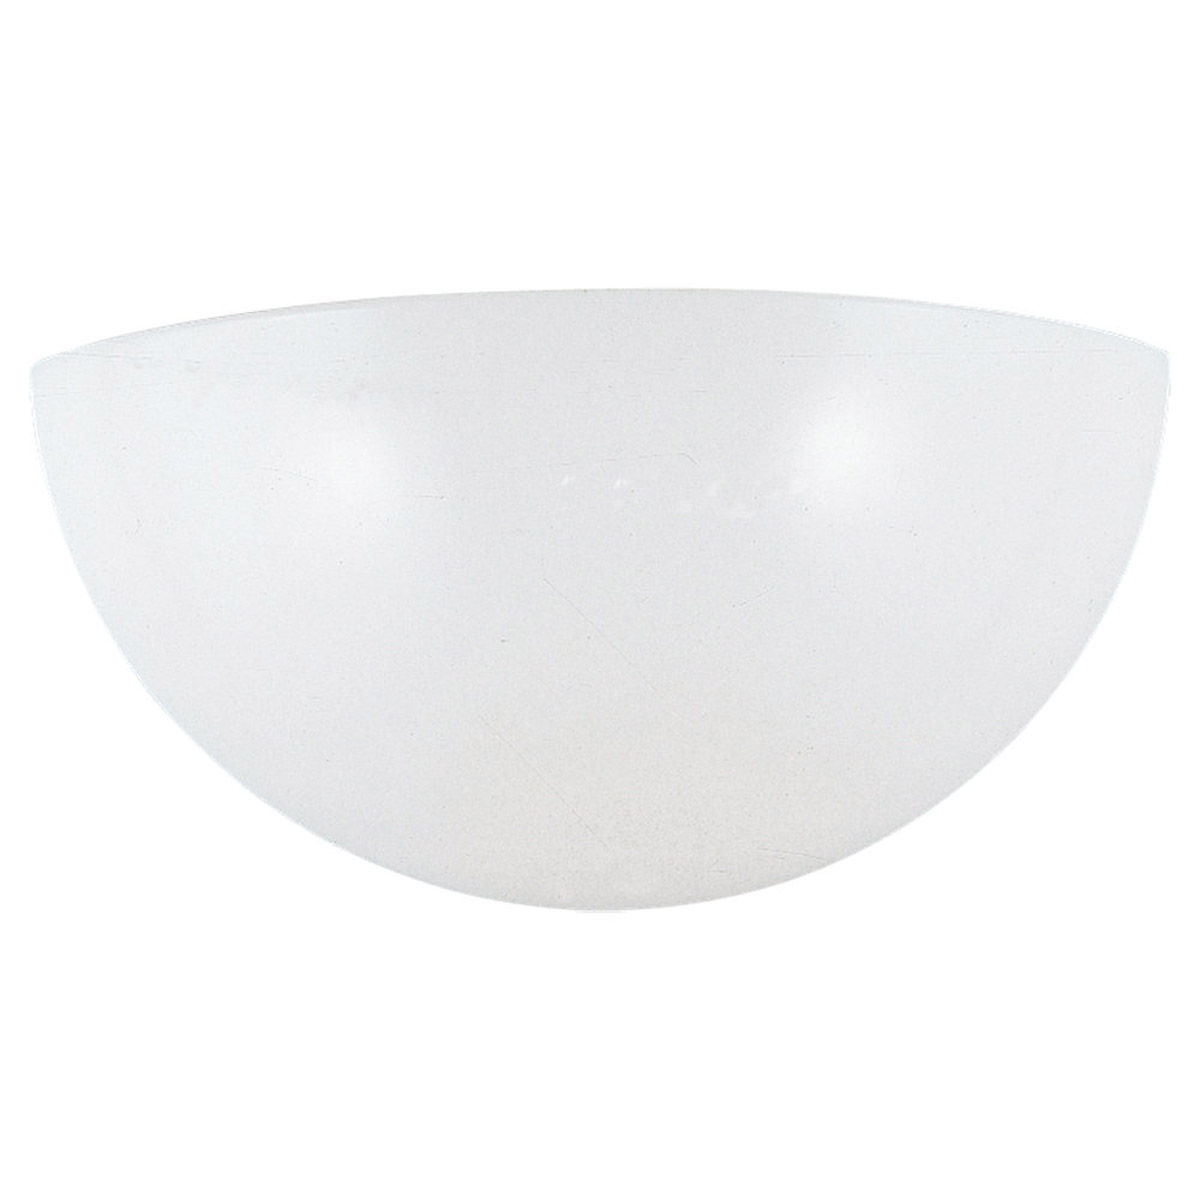 Sea Gull Lighting Signature 1 Light Bath Vanity in White 4138-15 photo